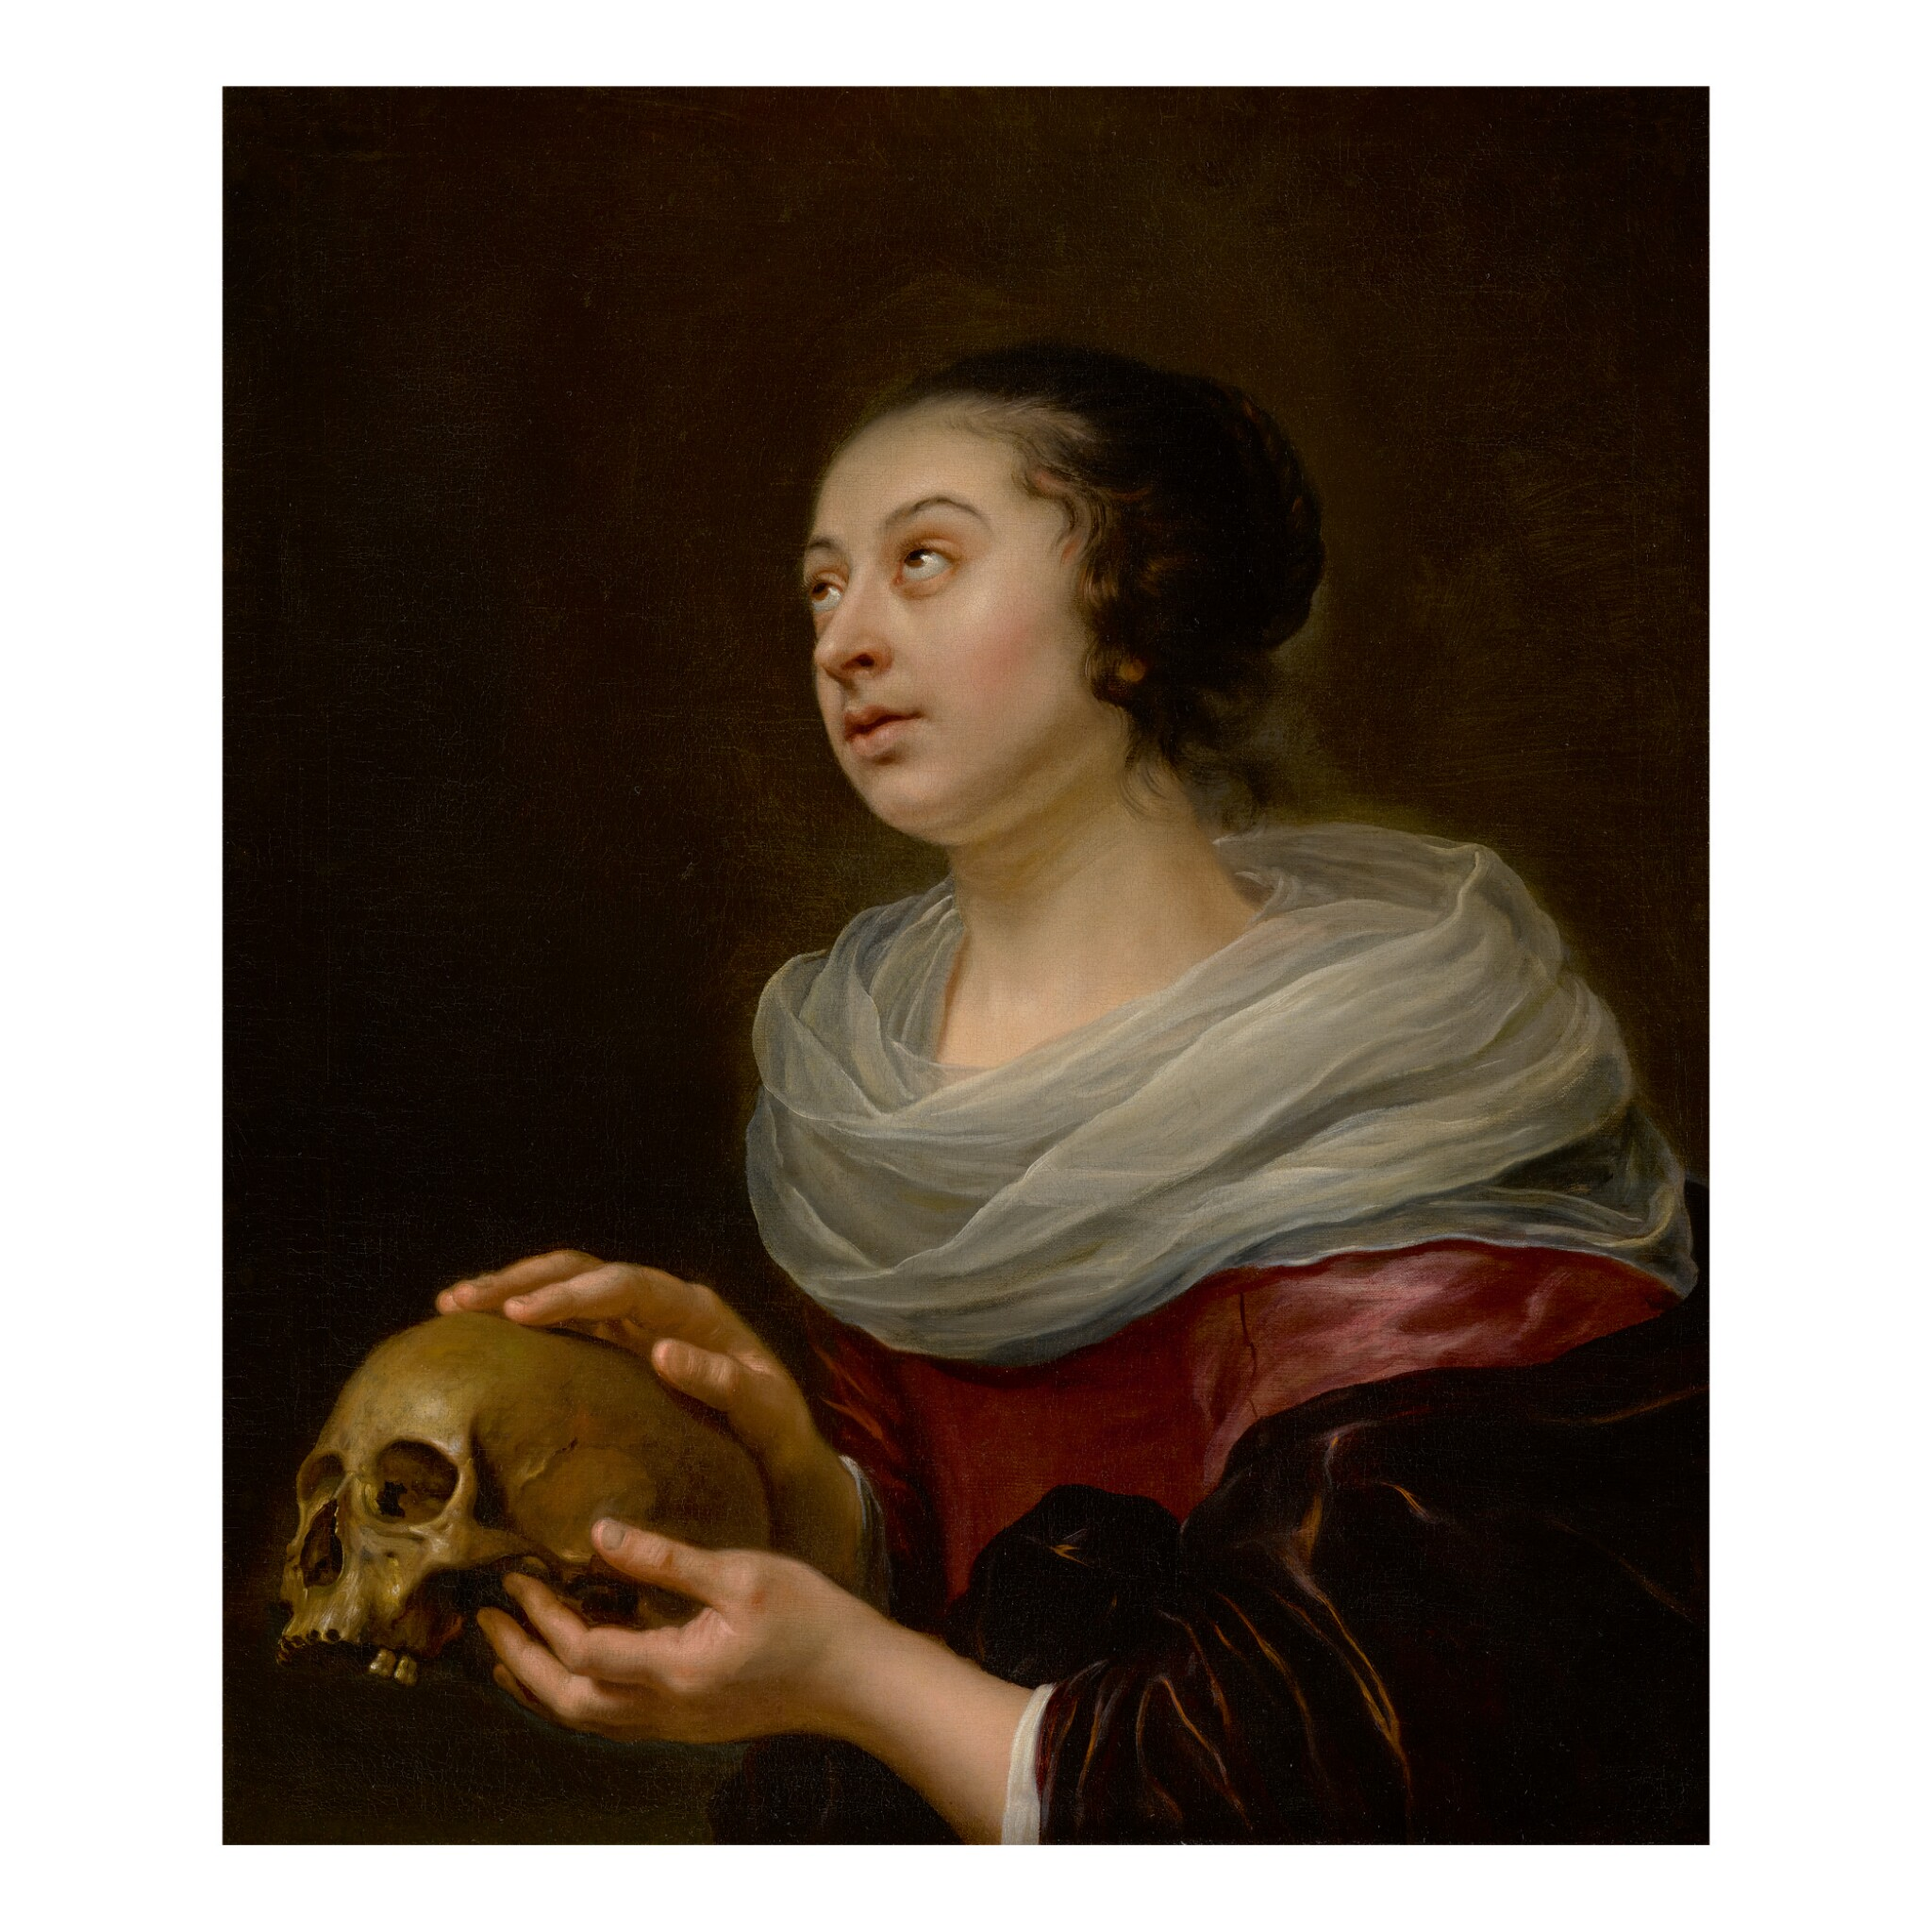 View full screen - View 1 of Lot 99. ATTRIBUTED TO JAN OLIS | A VANITAS PORTRAIT OF A YOUNG WOMAN, HALF LENGTH, HOLDING A SKULL.